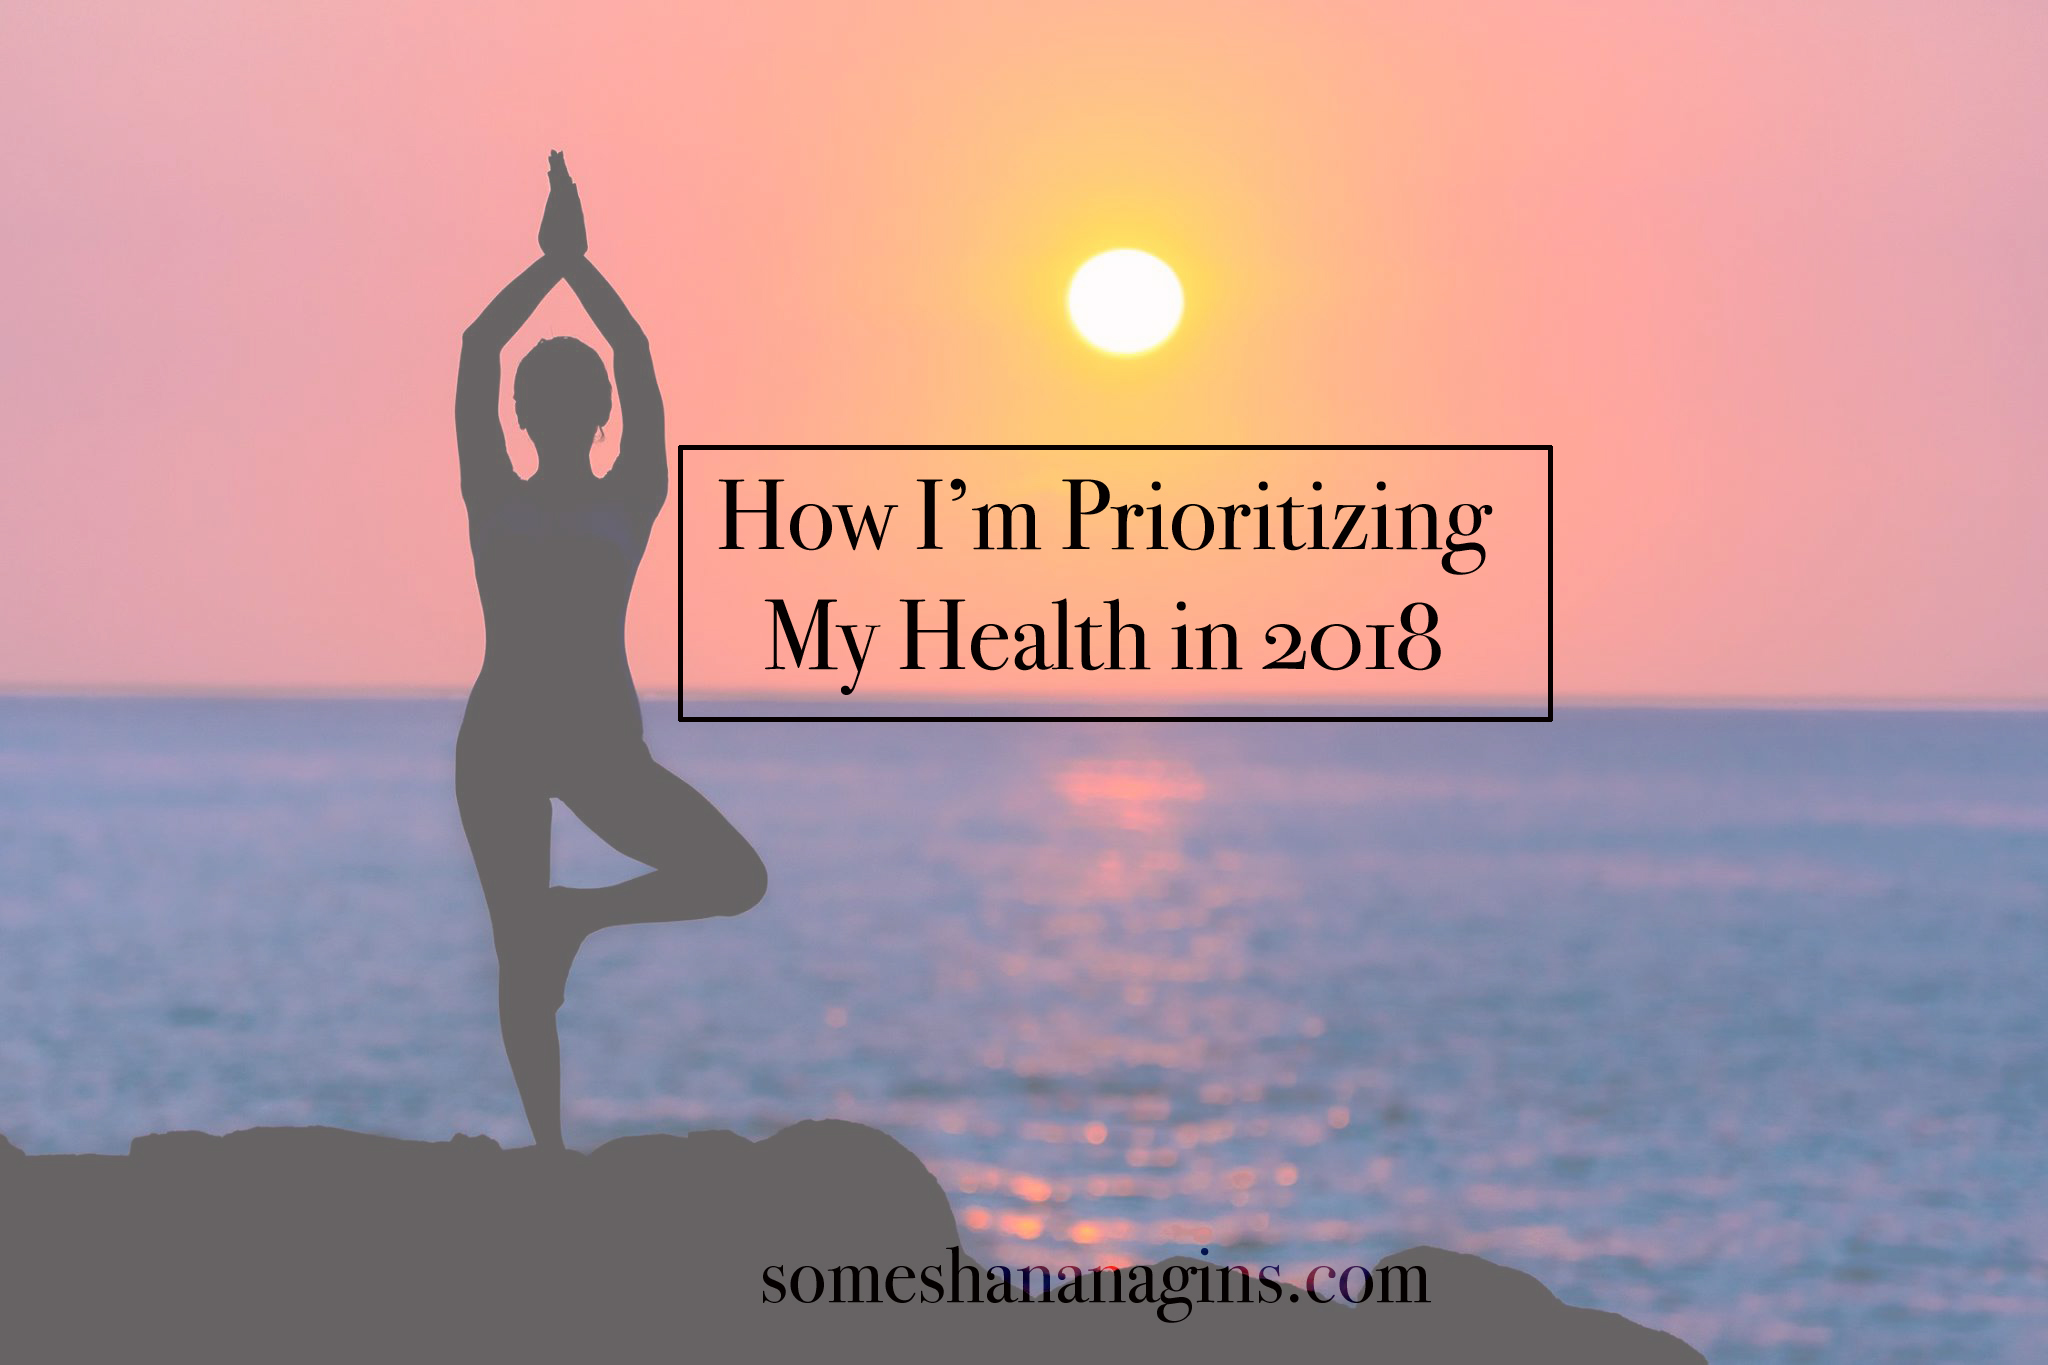 How I'm Prioritizing My Health in 2018 - Some Shananagins